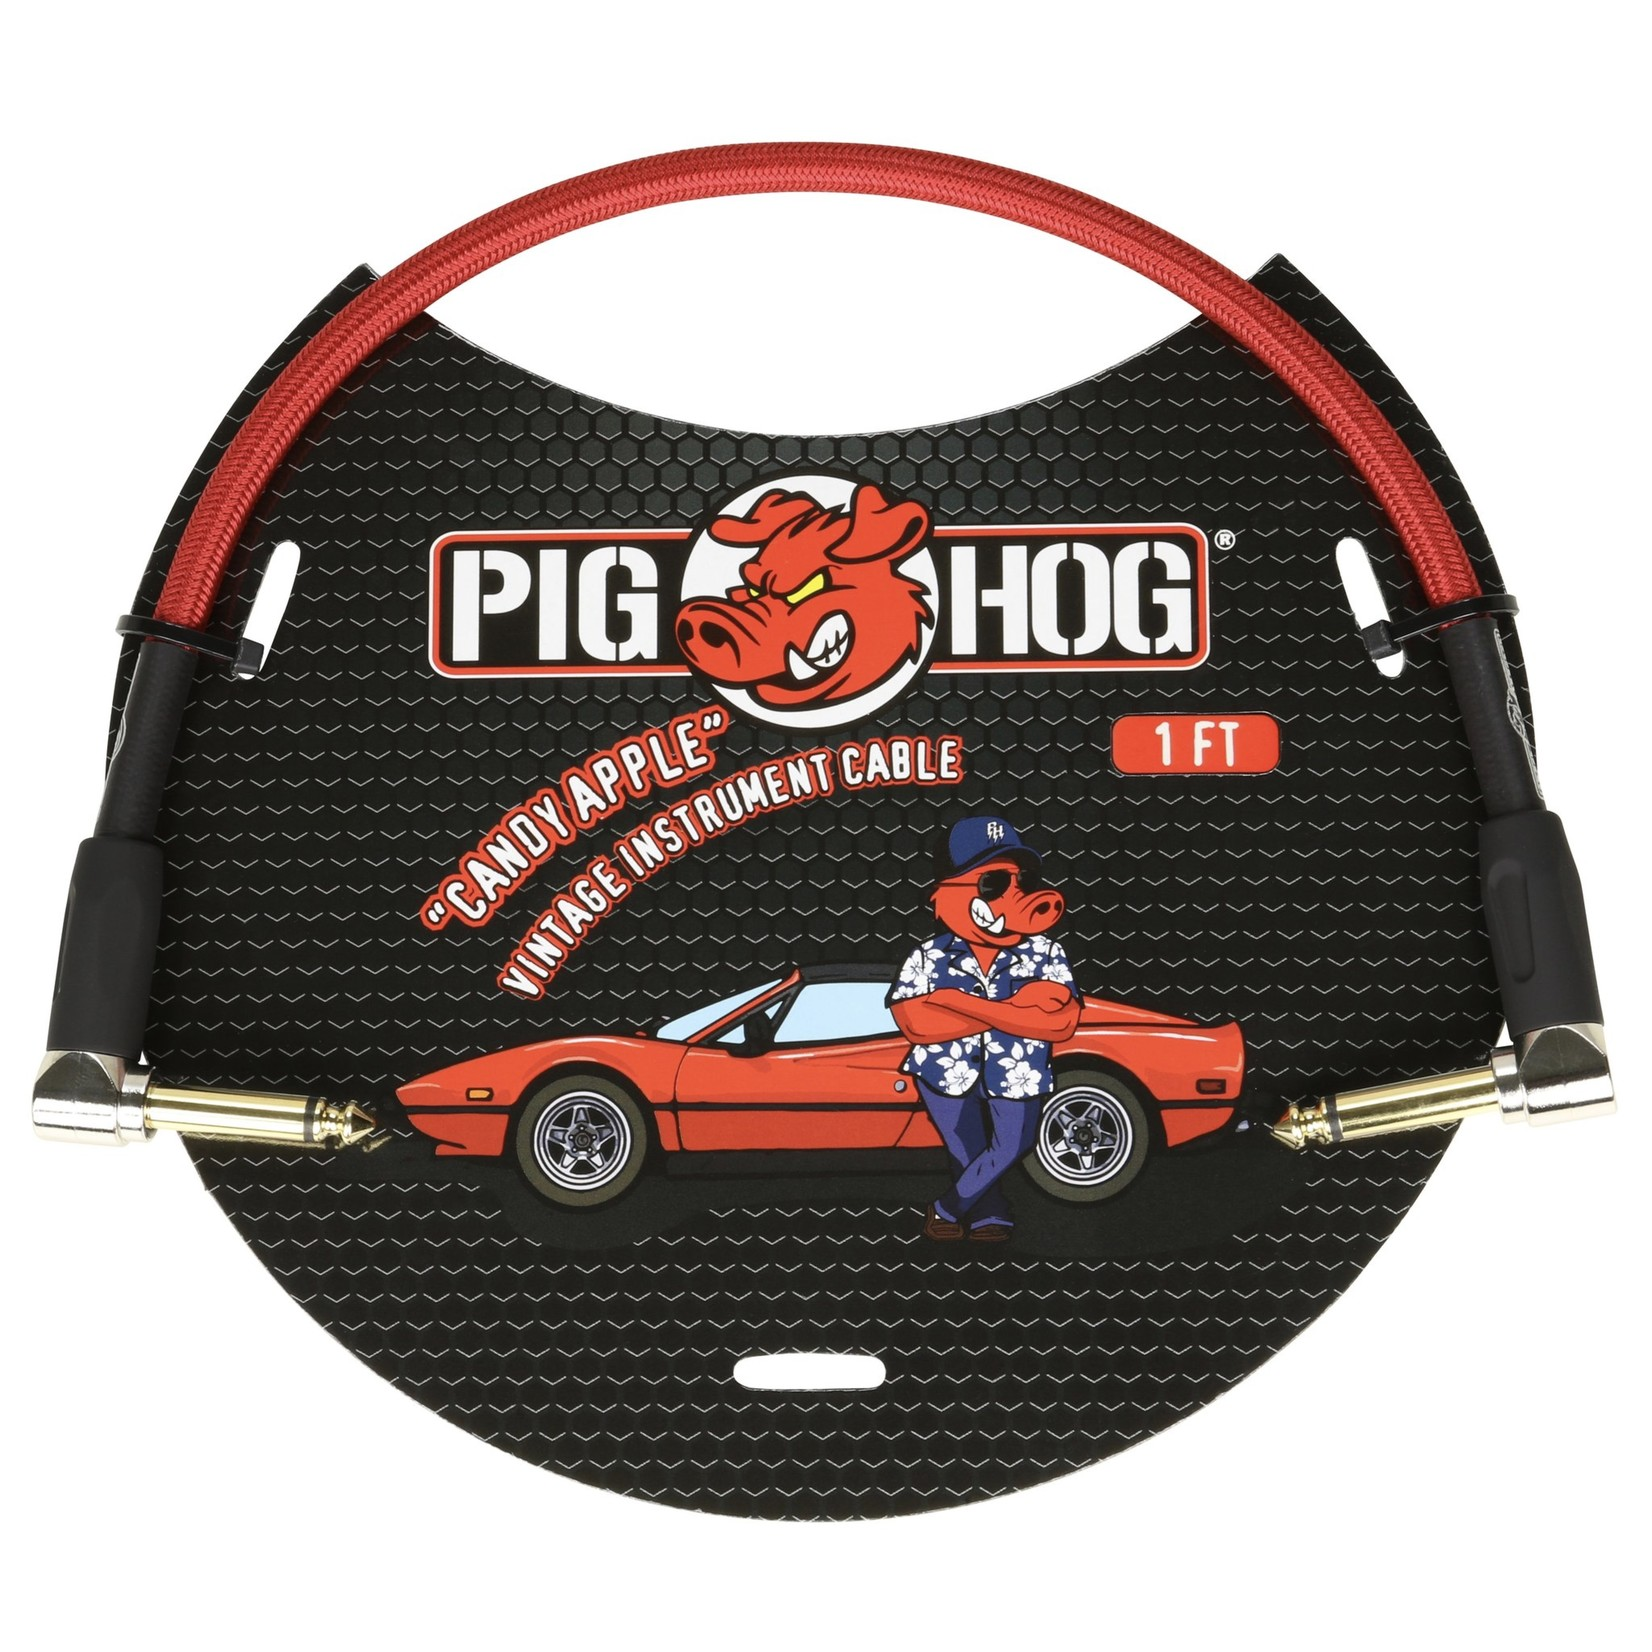 Pig Hog Pig Hog Vintage Woven Patch Cable, 1-Foot, 7mm, Right-Angle Connectors, Candy Apple Red (PCH1CAR)